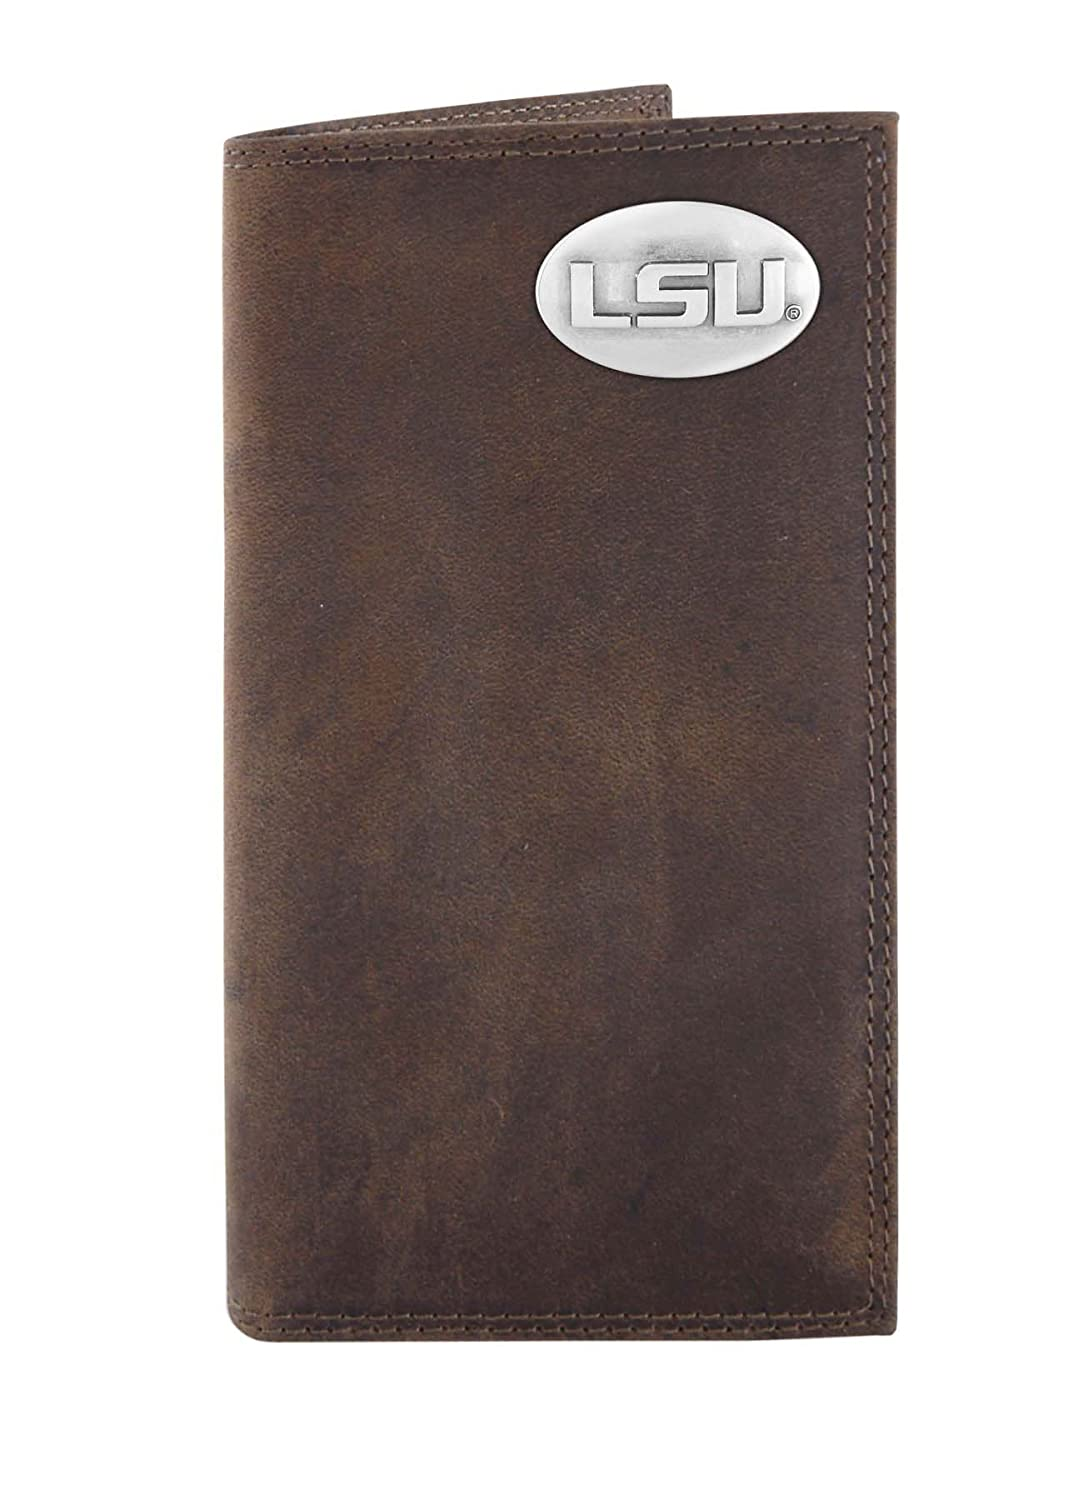 Amazon.com : NCAA Lsu Tigers Light Brown Crazyhorse Leather Roper ...